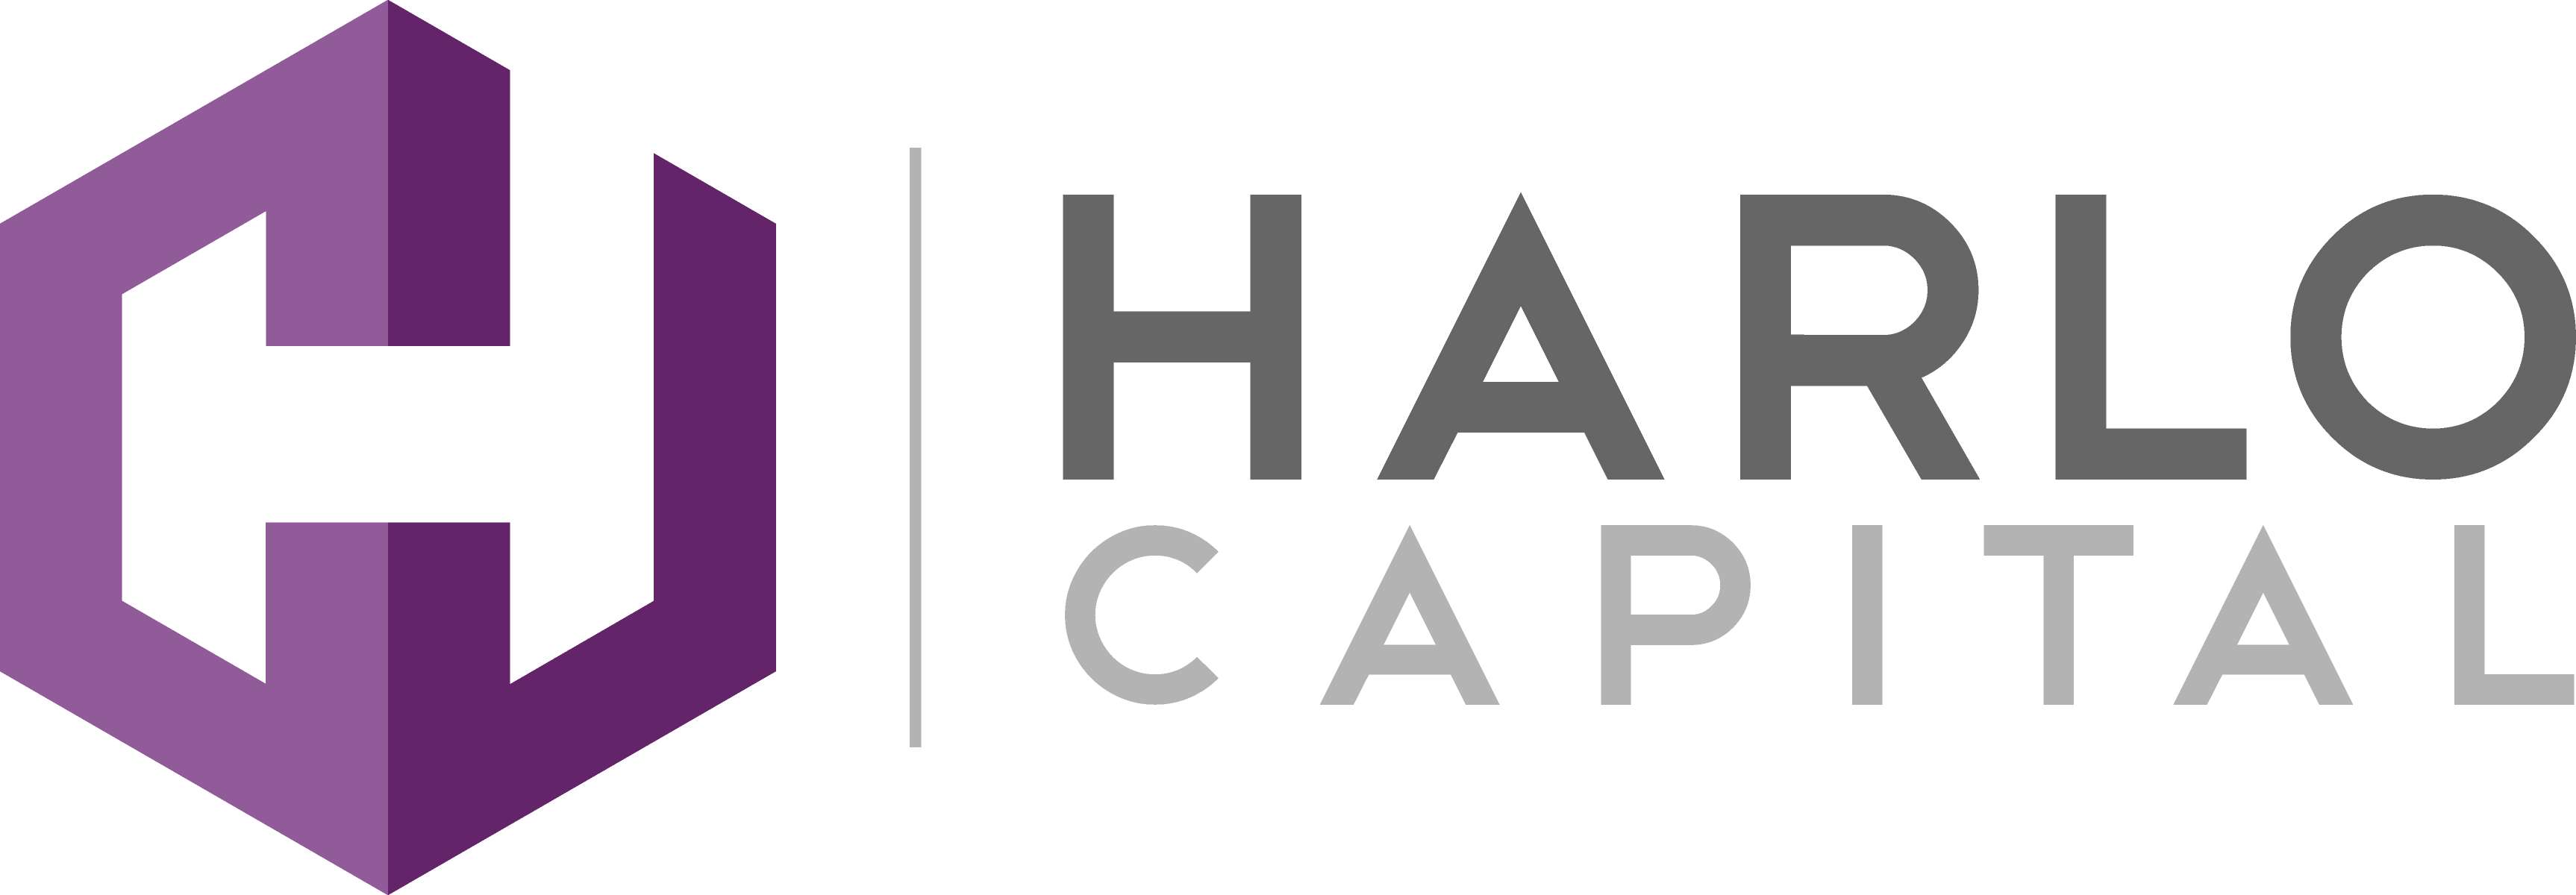 Harlo Capital